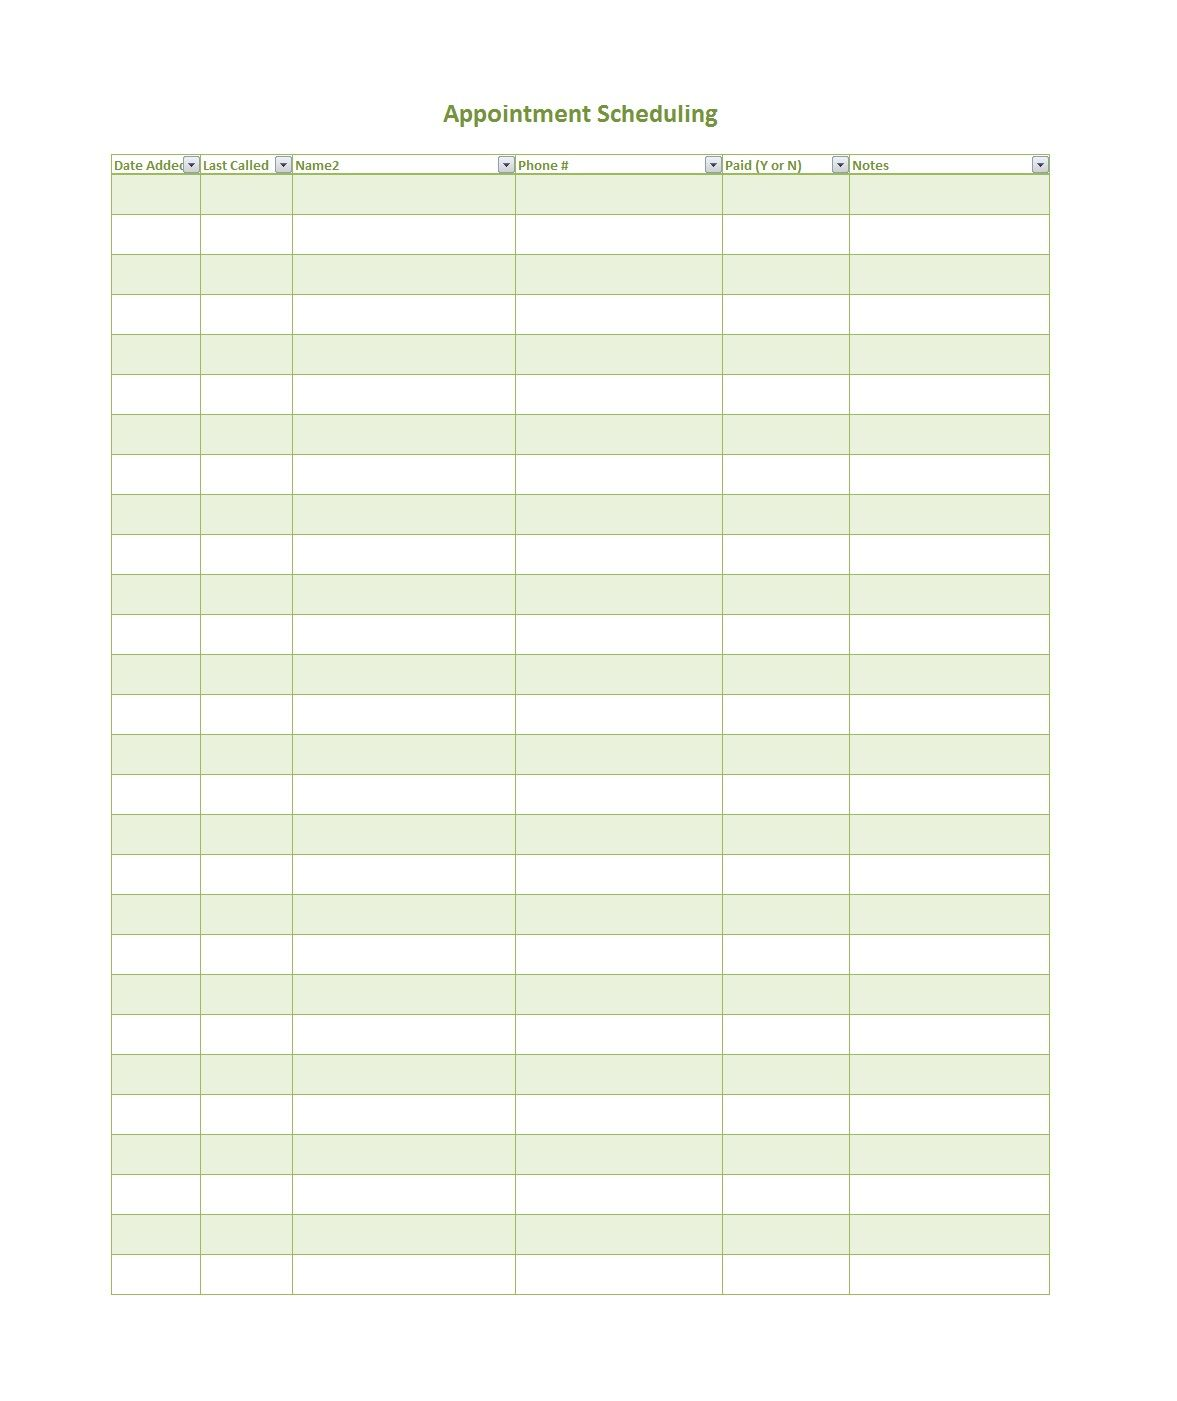 Free Printable Appointment Scheduler Dalep Midnightpig Co Pertaining To Appointment Sheet Template In 2020 Schedule Templates Calendar Template Appointment Calendar